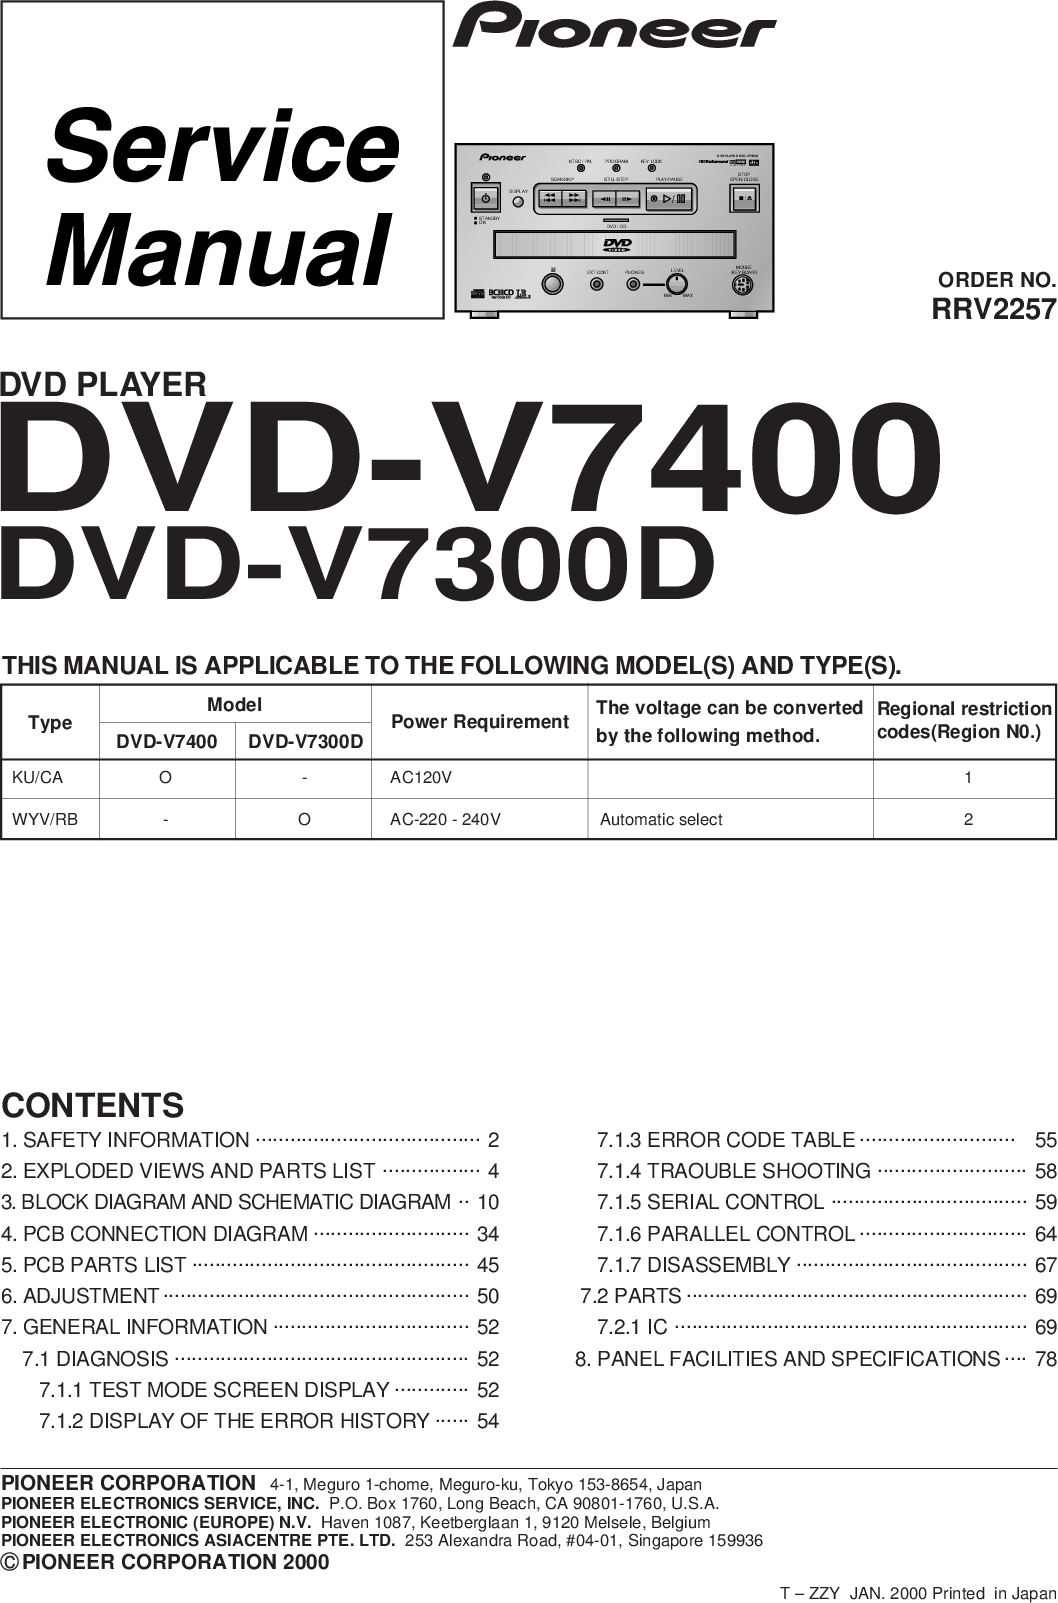 Pioneer DVD V7300D User Manual To The 983156bb 6aff 42ba a15f